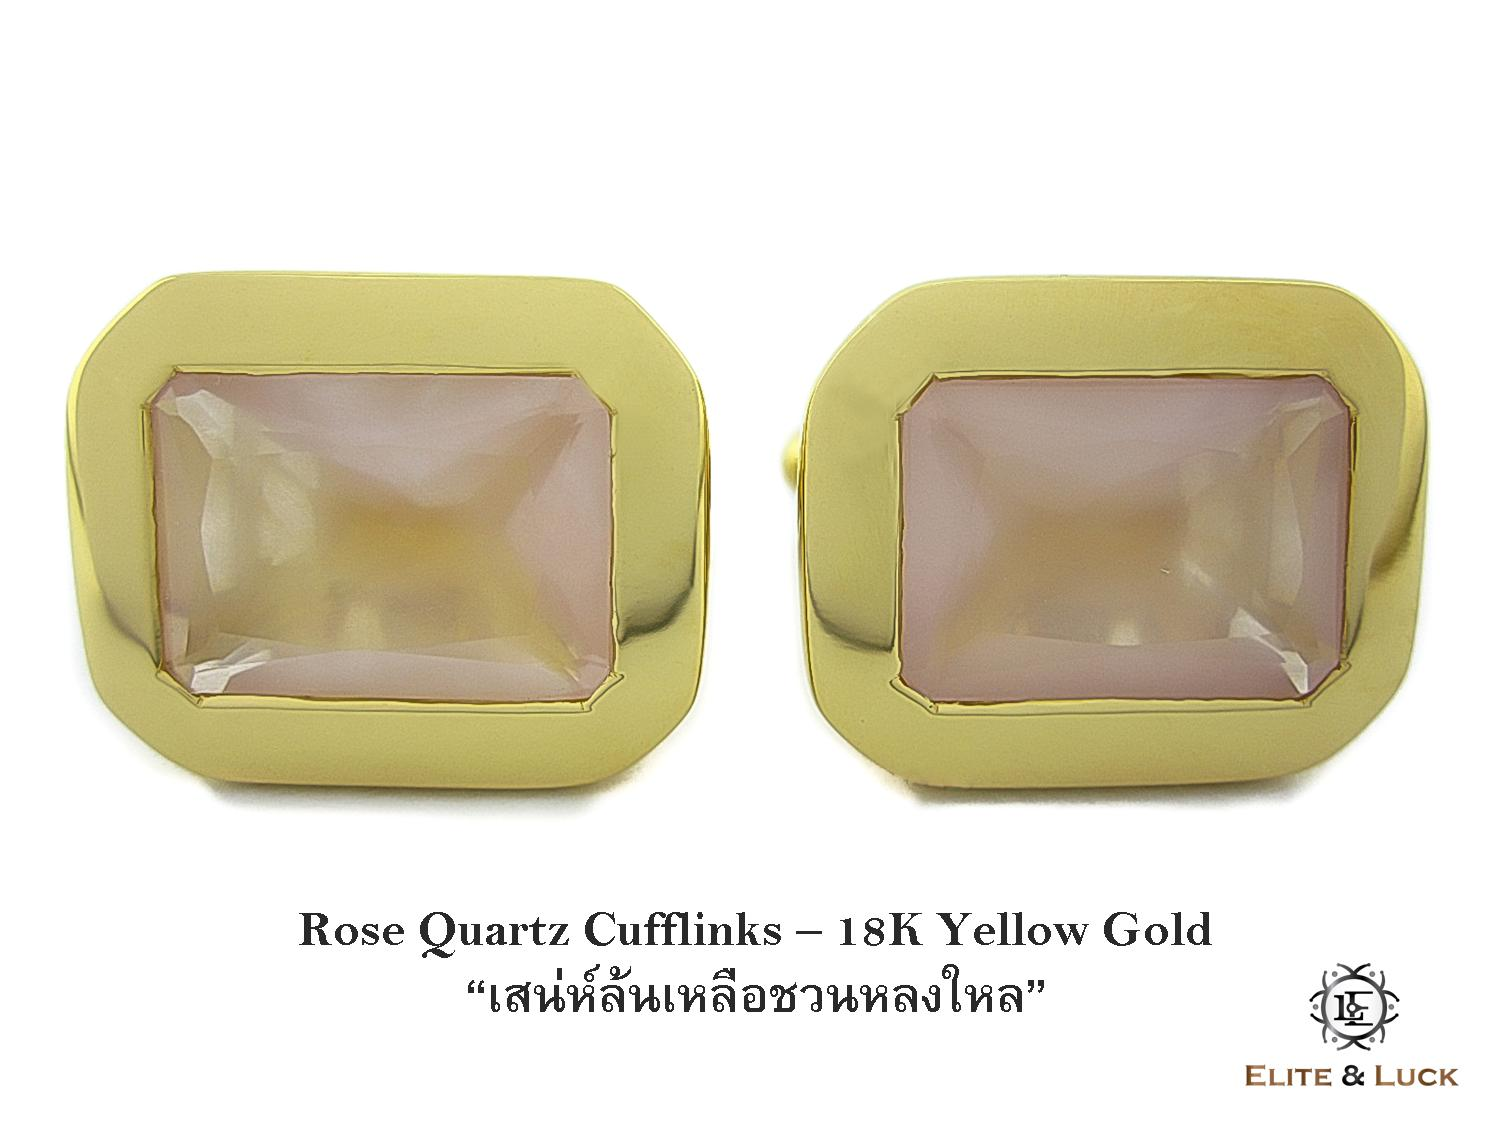 Rose Quartz Sterling Silver Cufflinks สี 18K Yellow Gold รุ่น Classic